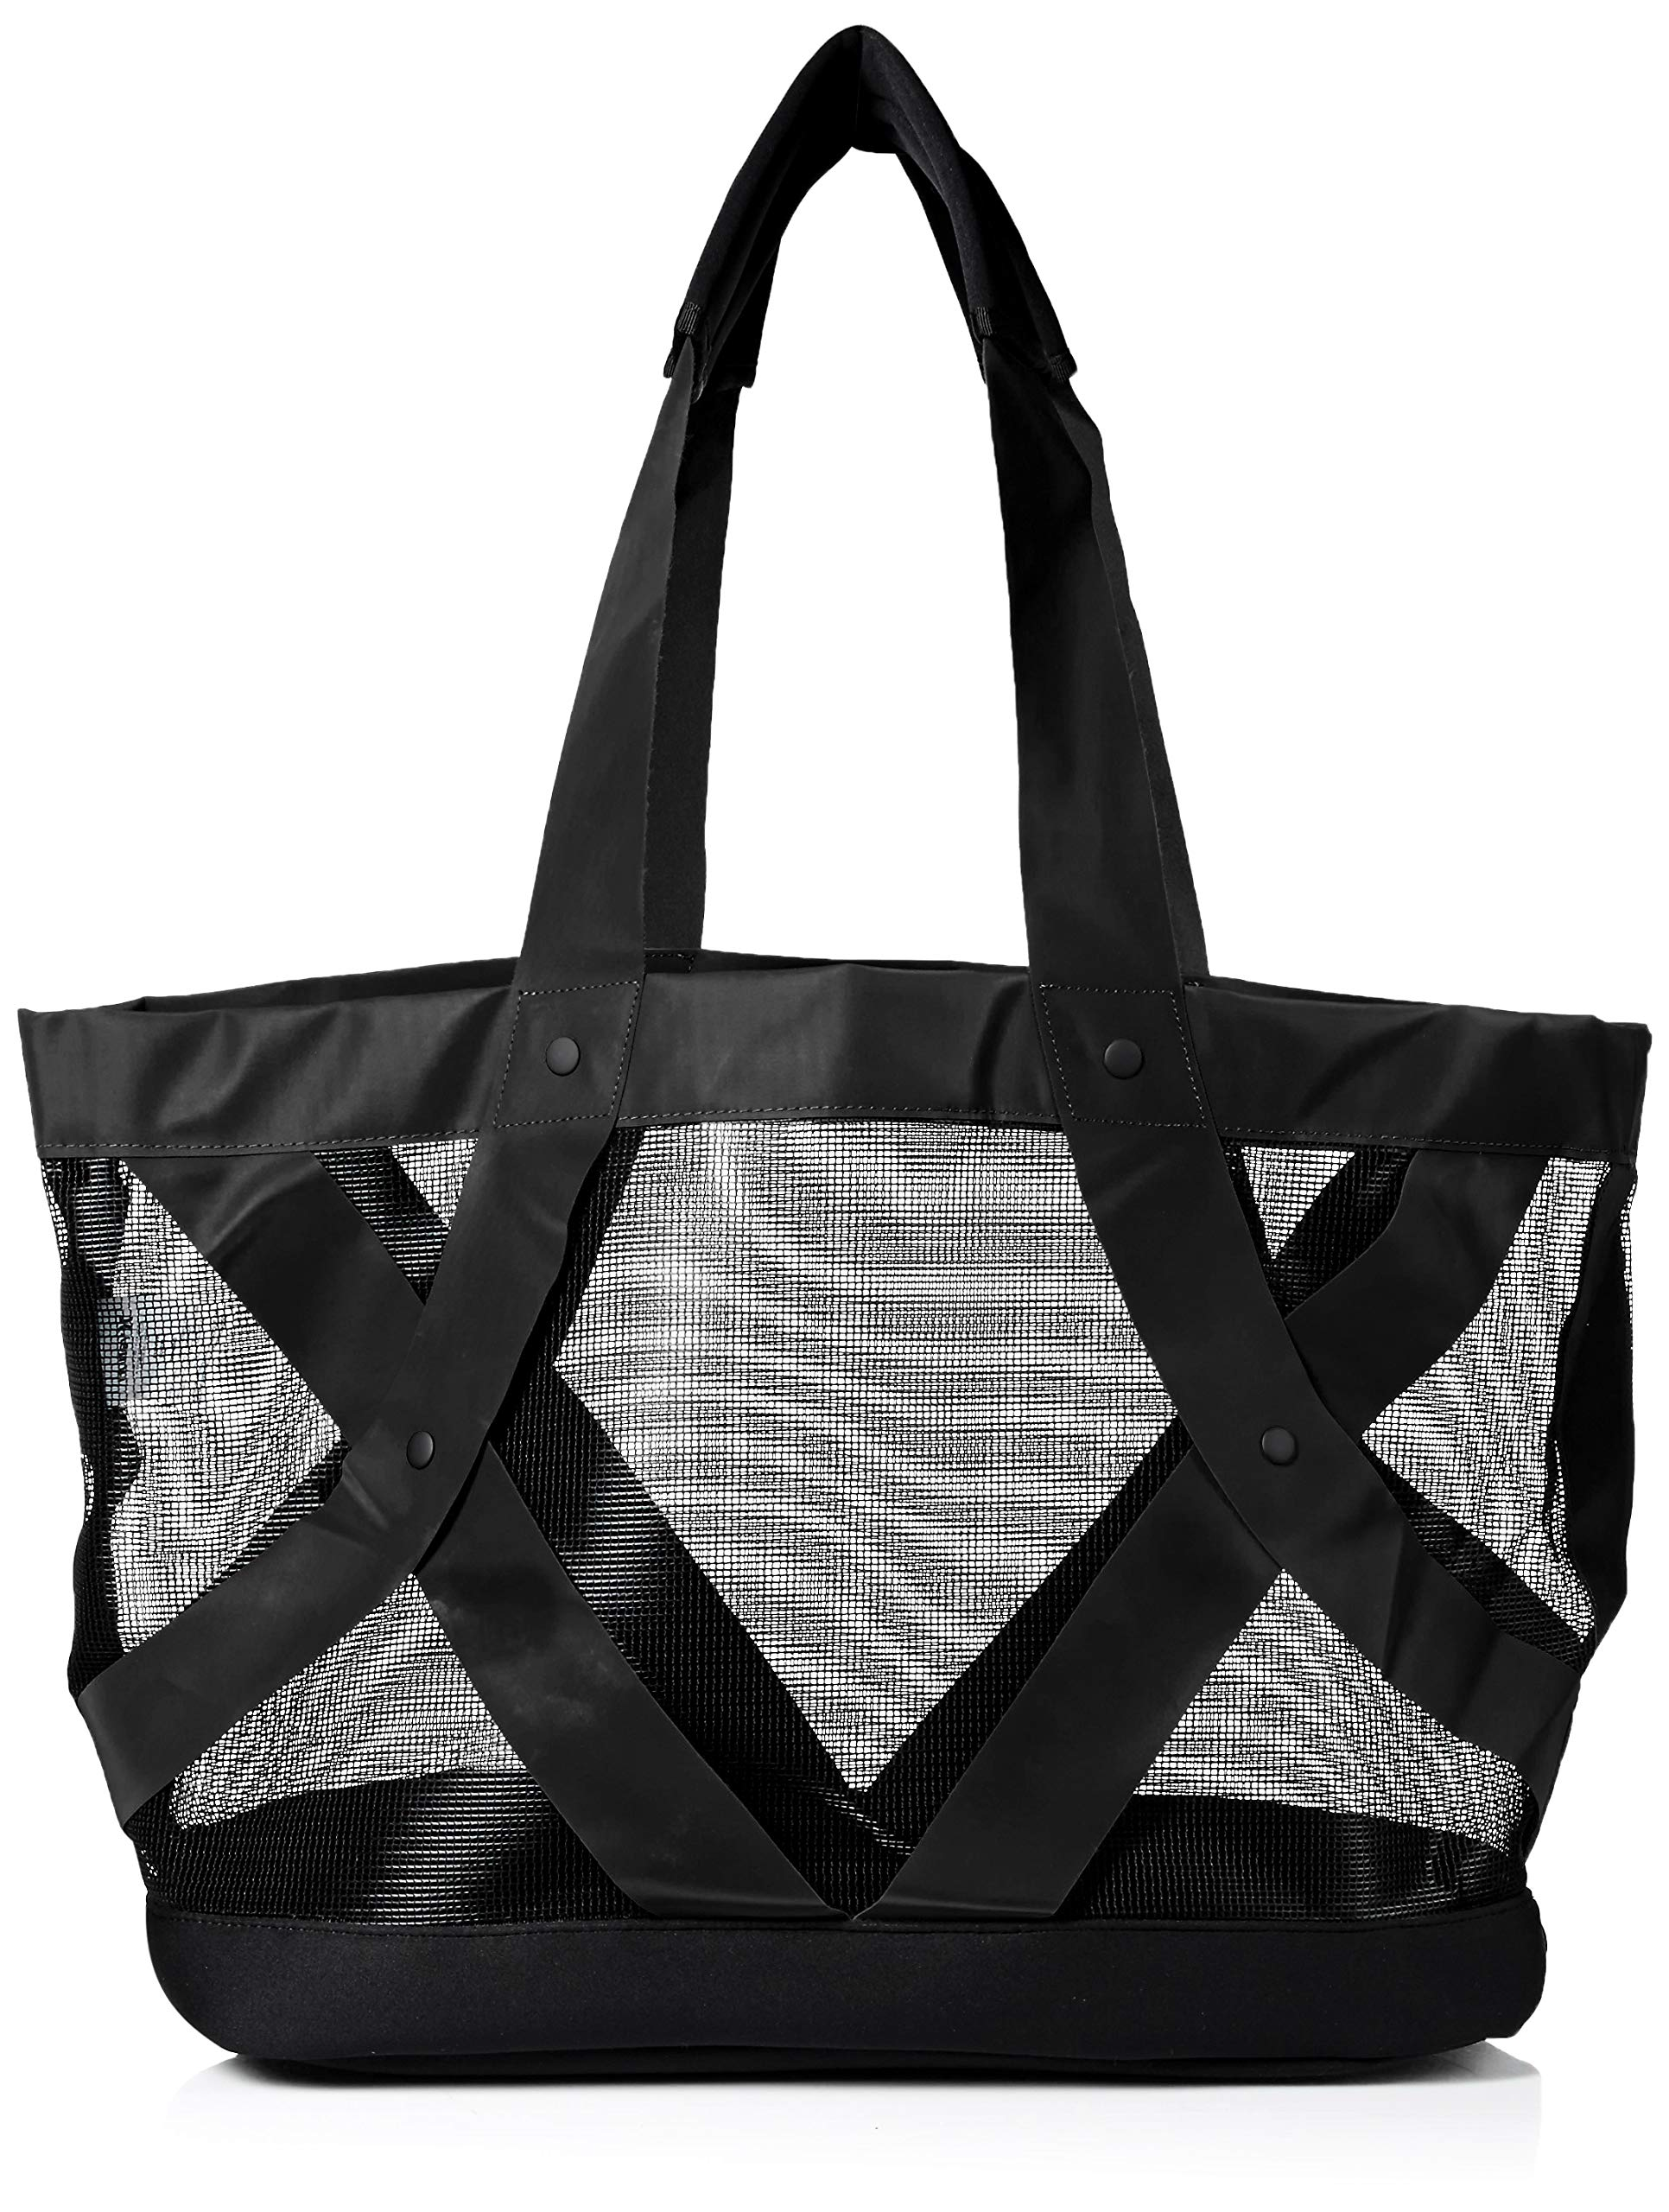 Hurley Women's Apparel Junior's Large Slash Mesh Beach Tote, black QTY